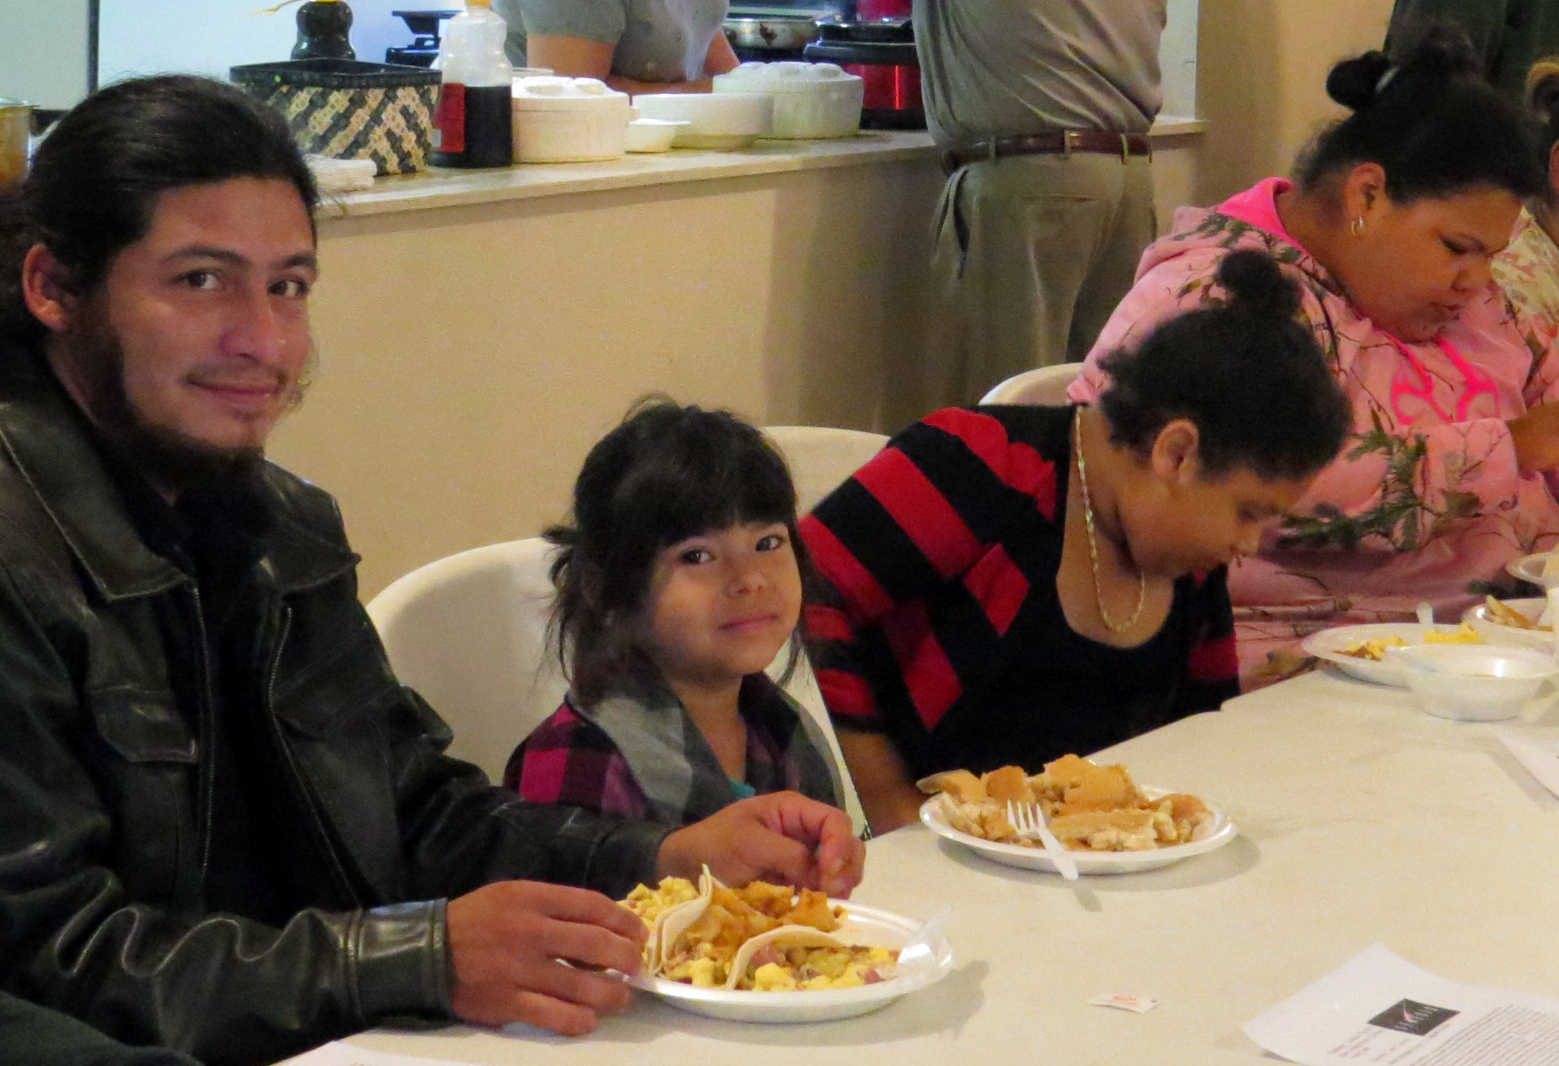 Tacos are the main attraction at San Pablo United Methodist Church's Taco Service, but pancakes and oatmeal are offered as well. The Pearsall, Texas, church is led by the Rev. Liliana Padilla, who cooks for the Taco Service. Photo by Sam Hodges, UMNS.